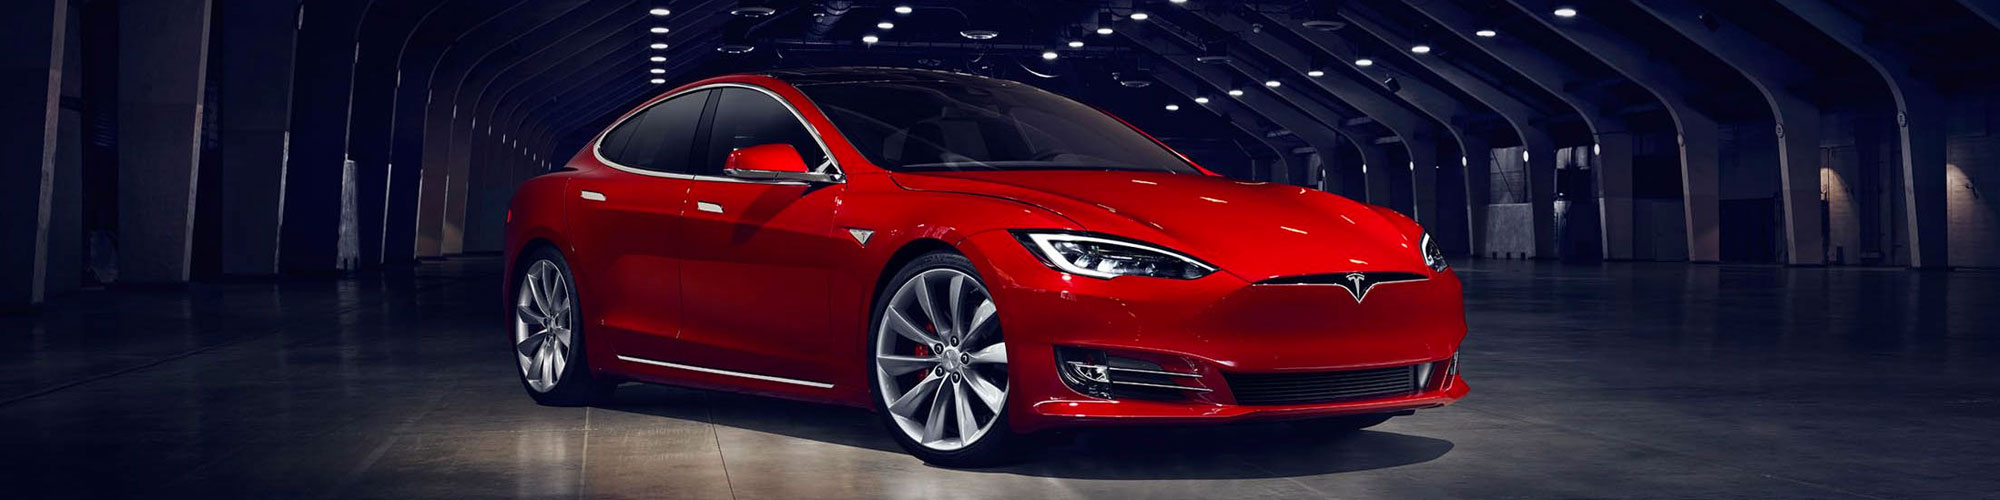 The Tesla Model S P100D can go from 0-60 mph in a mind-boggling 2.3 seconds. This has led to declarations that this all-electric four-door is secretly a supercar. Ferrari isn't having anything of it.